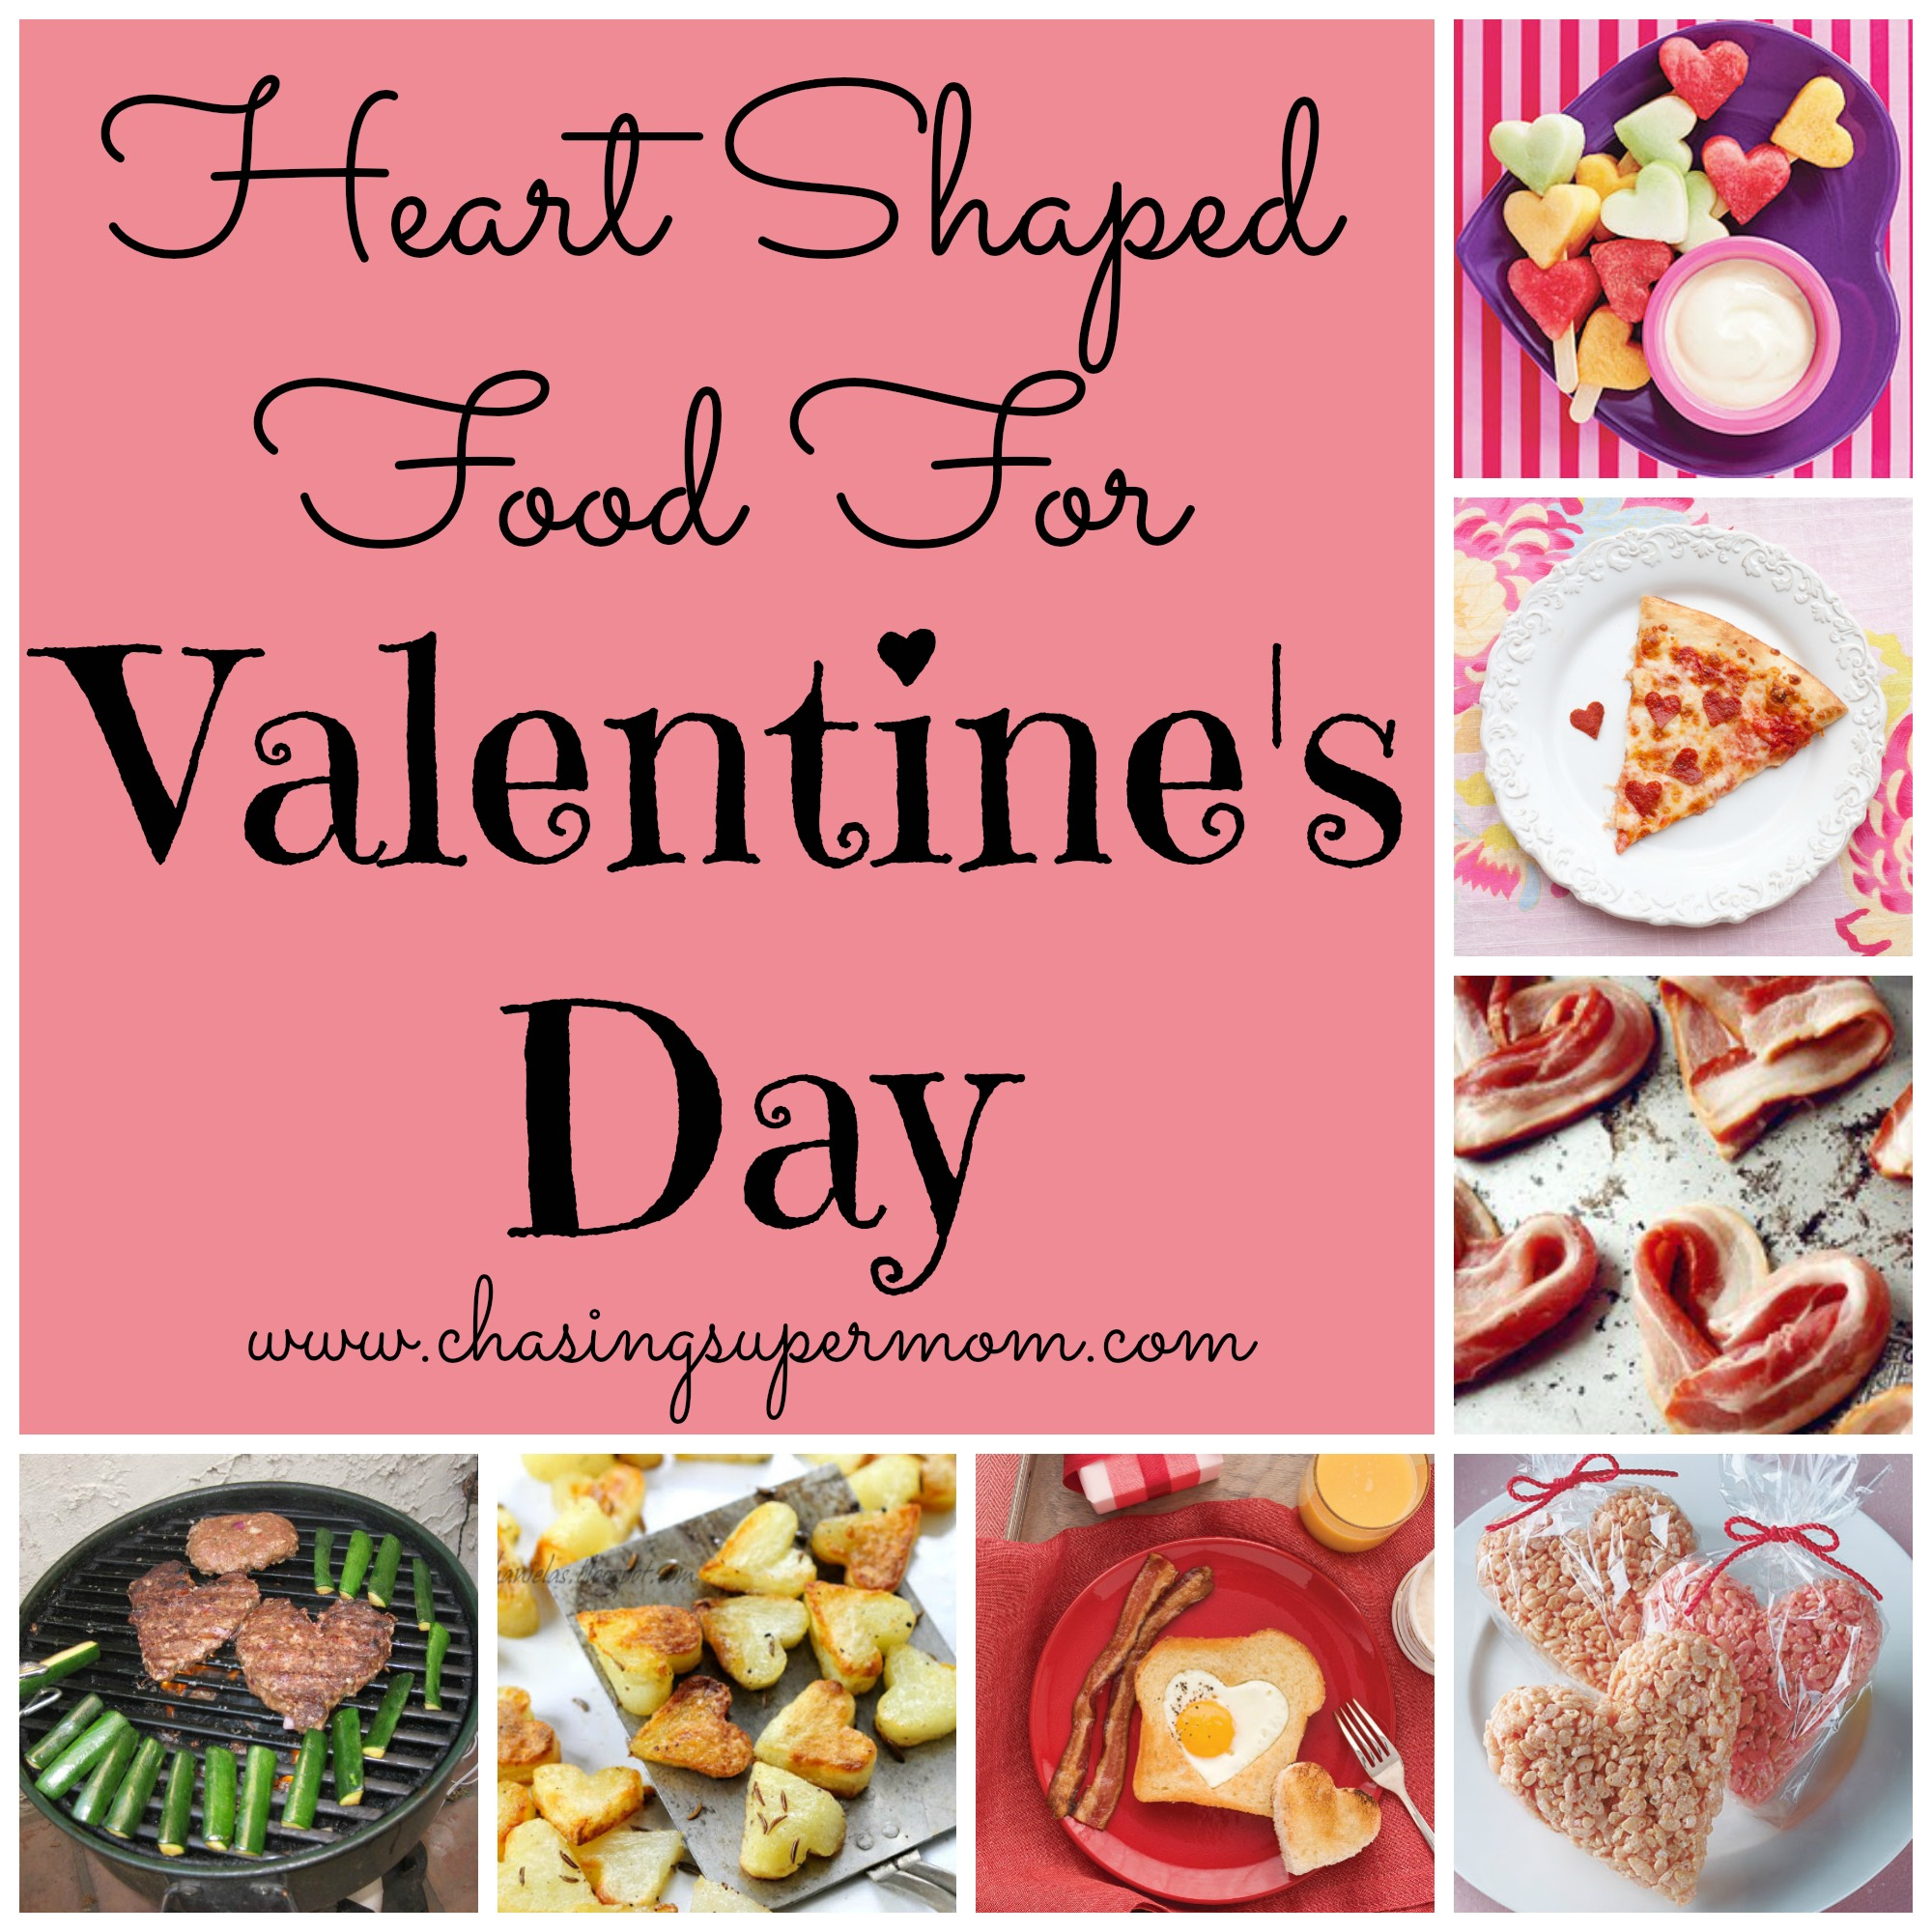 Valentine's Day Food Ideas: Heart-Shaped Food